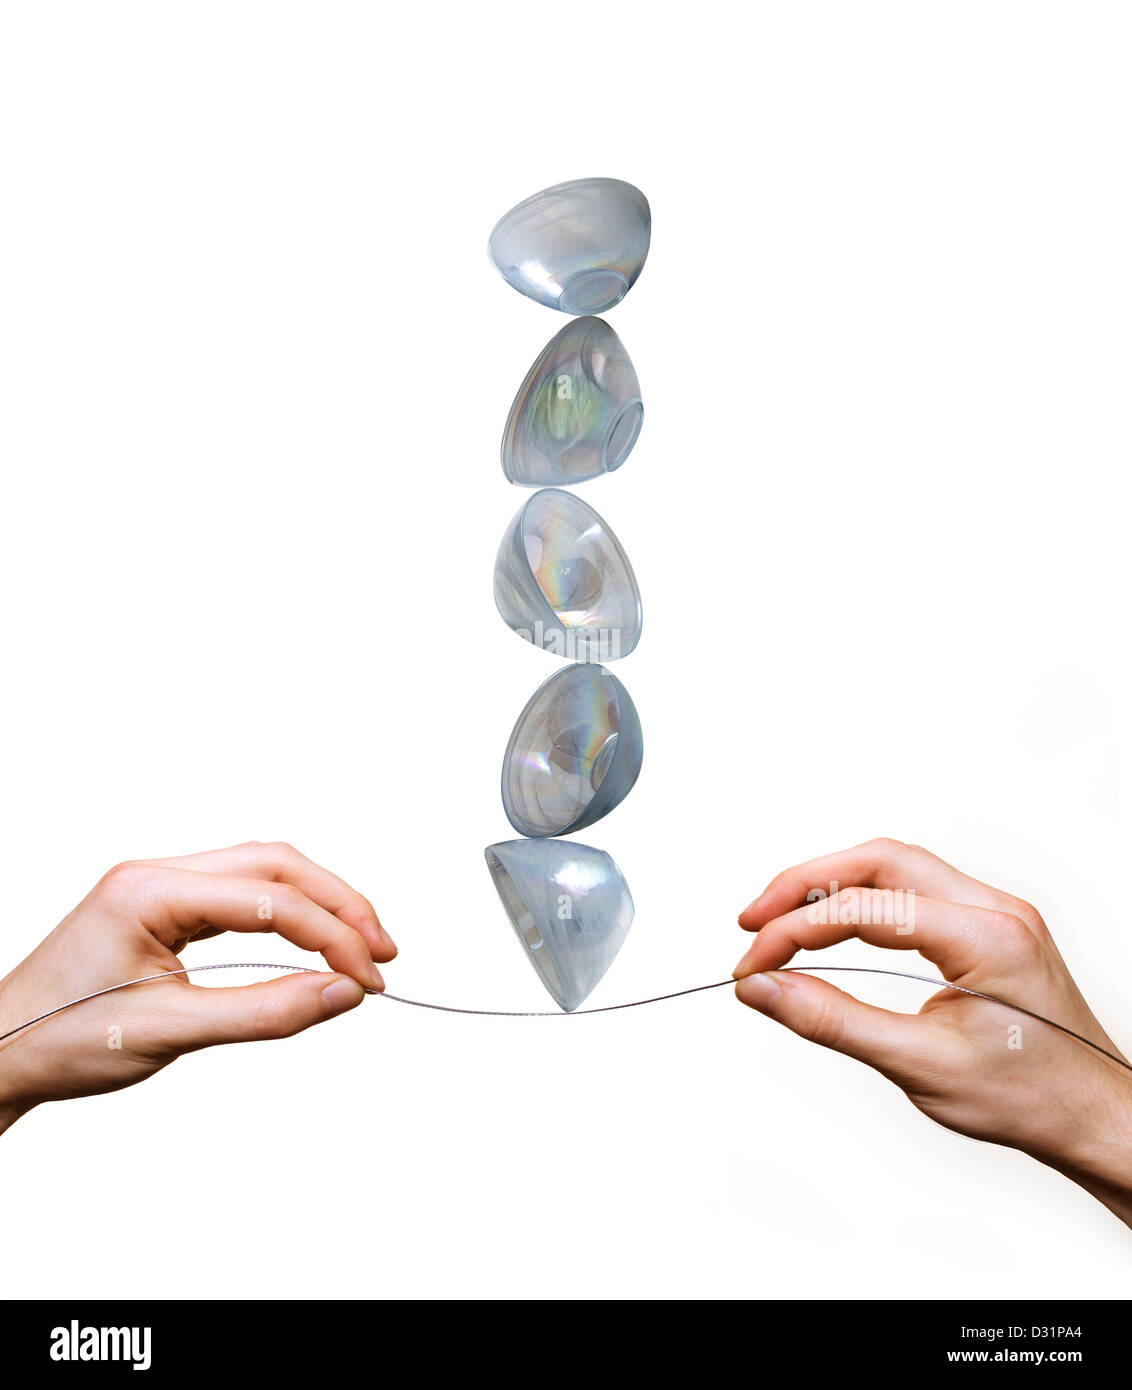 hands balancing stack of bowls on wire tightrope - Stock Image